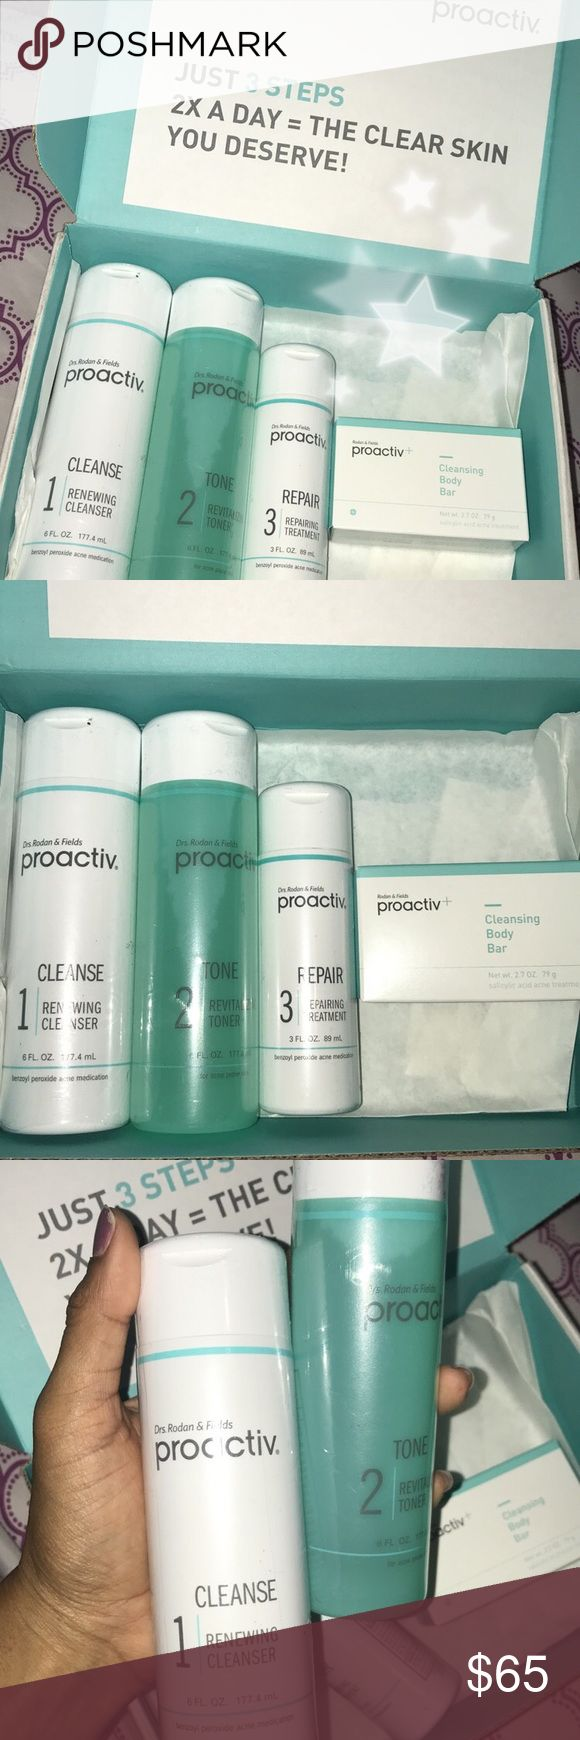 BRAND NEW NEVER USED PROACTIV KIT Brand new never used or open Proactiv skin car kit, comes with the Full Size Cleanser, Toner,  repairing treatment and cleansing body bar😊, also comes with extra FREE GIFTS 🎁 Sephora Makeup